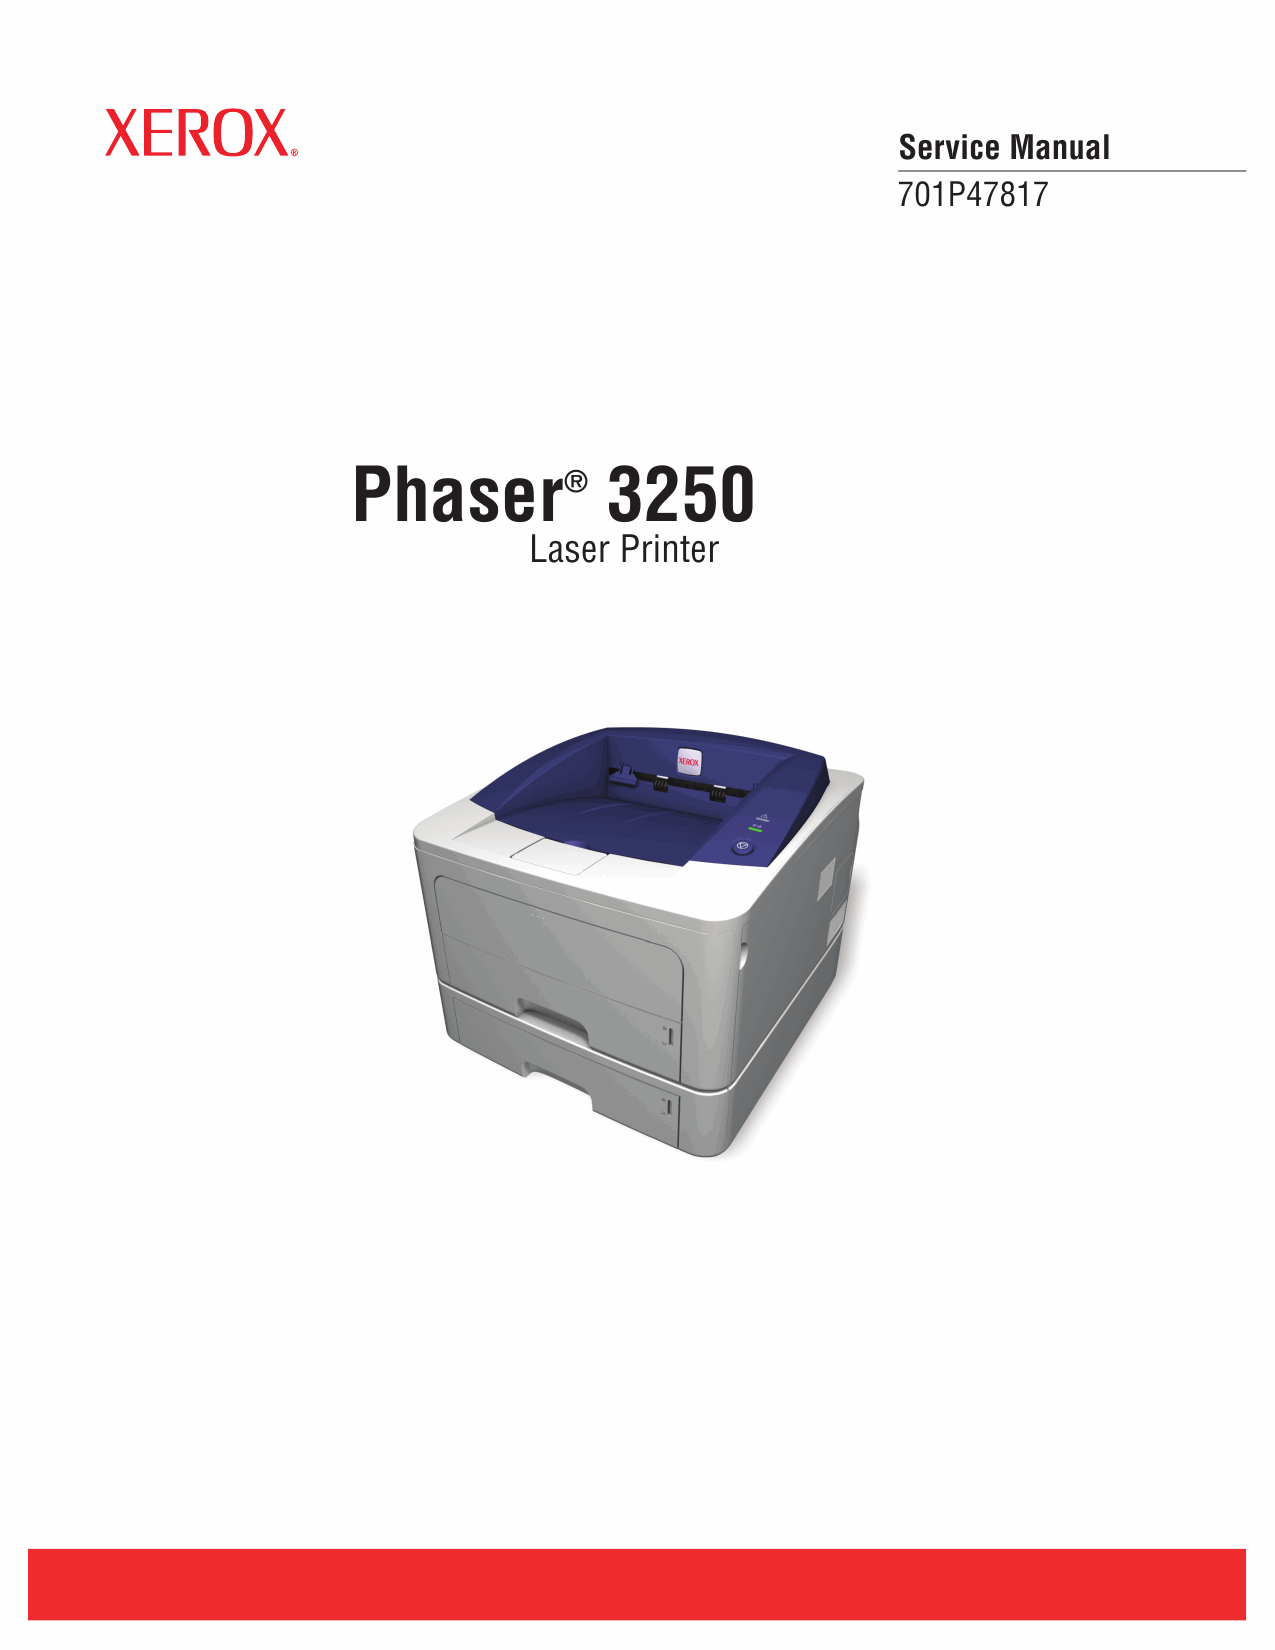 Xerox Phaser 3250 Parts List and Service Manual-1